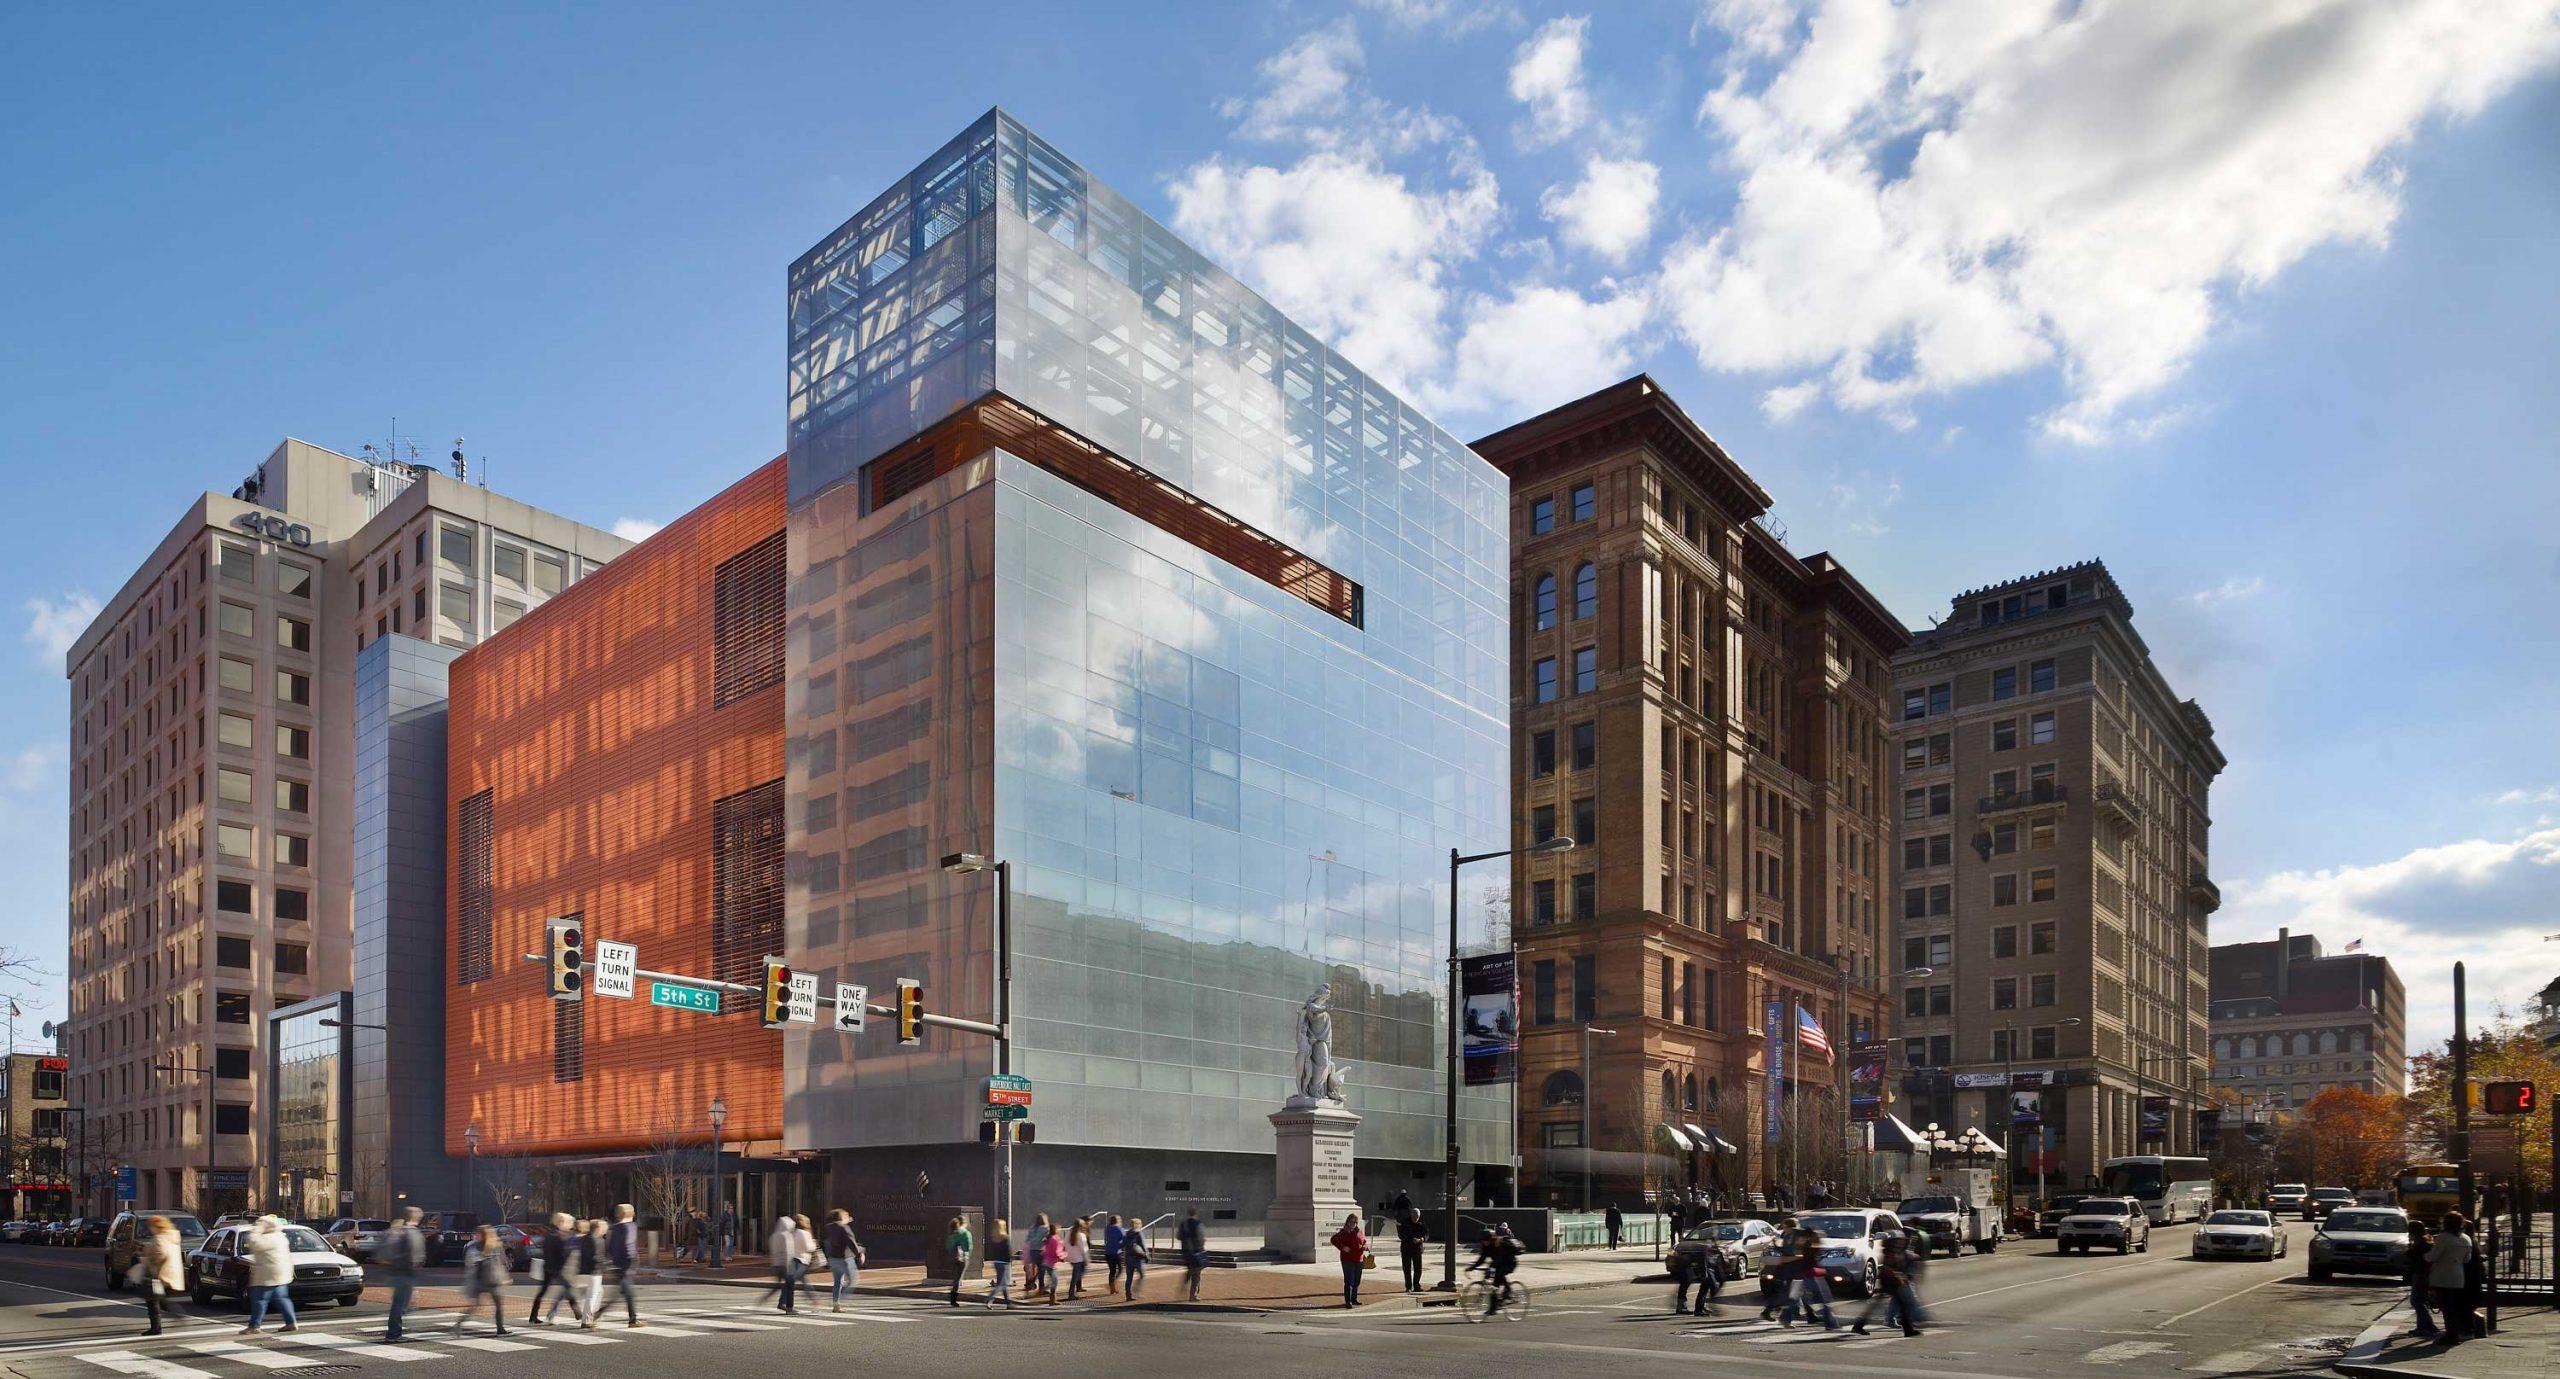 Teaching, Interpreting, and Inspiring Dialogue about the American Jewish Experience, at the National Museum of American Jewish History